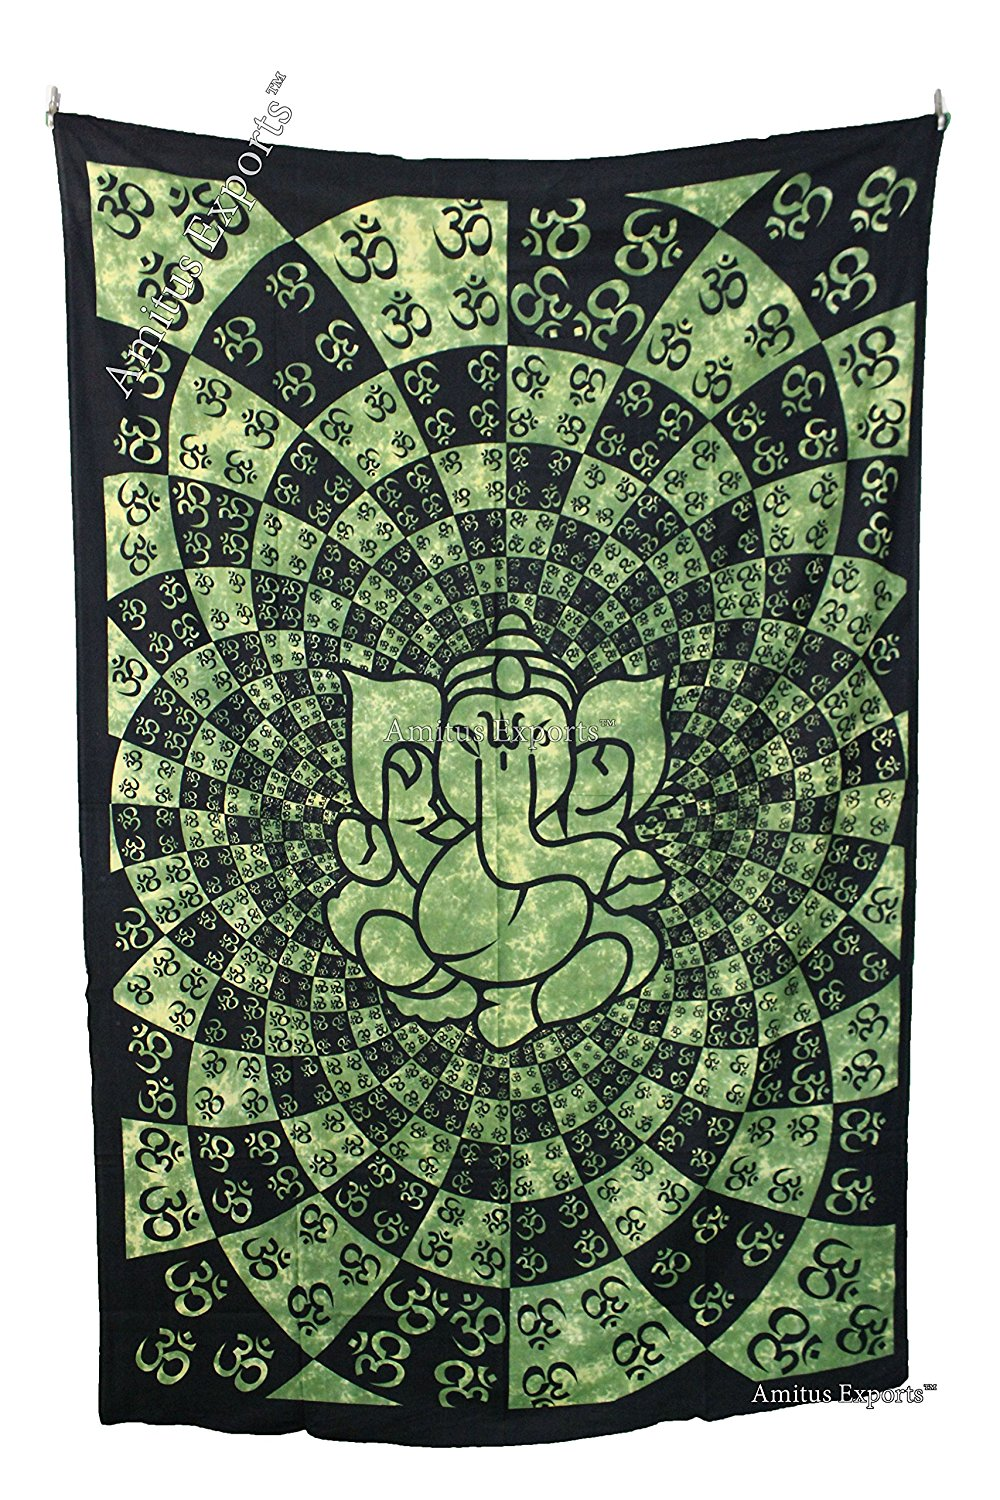 """Amitus Exports (TM) 1 X Ganesh Om 80""""X53"""" Approx. Inches Green Tie Dye Color Cotton Fabric Multi-Purpose Handmade Tapestry Hippy Indian Mandala Throws Bohemian Tapestries"""